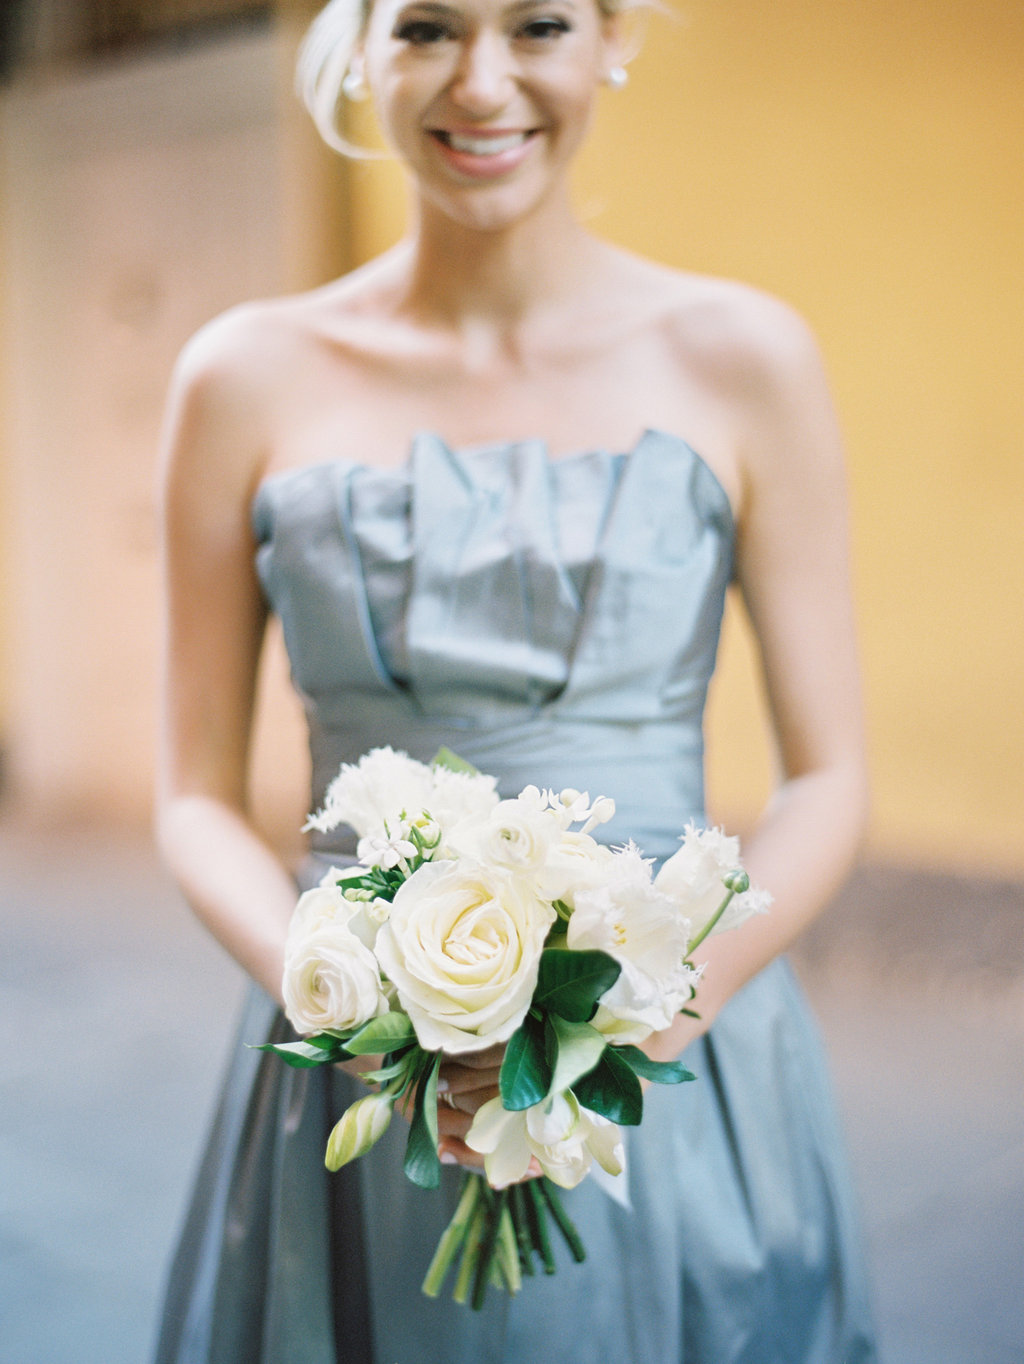 Bridesmaid in a strapless light blue dress and white roses and greenery bouquet